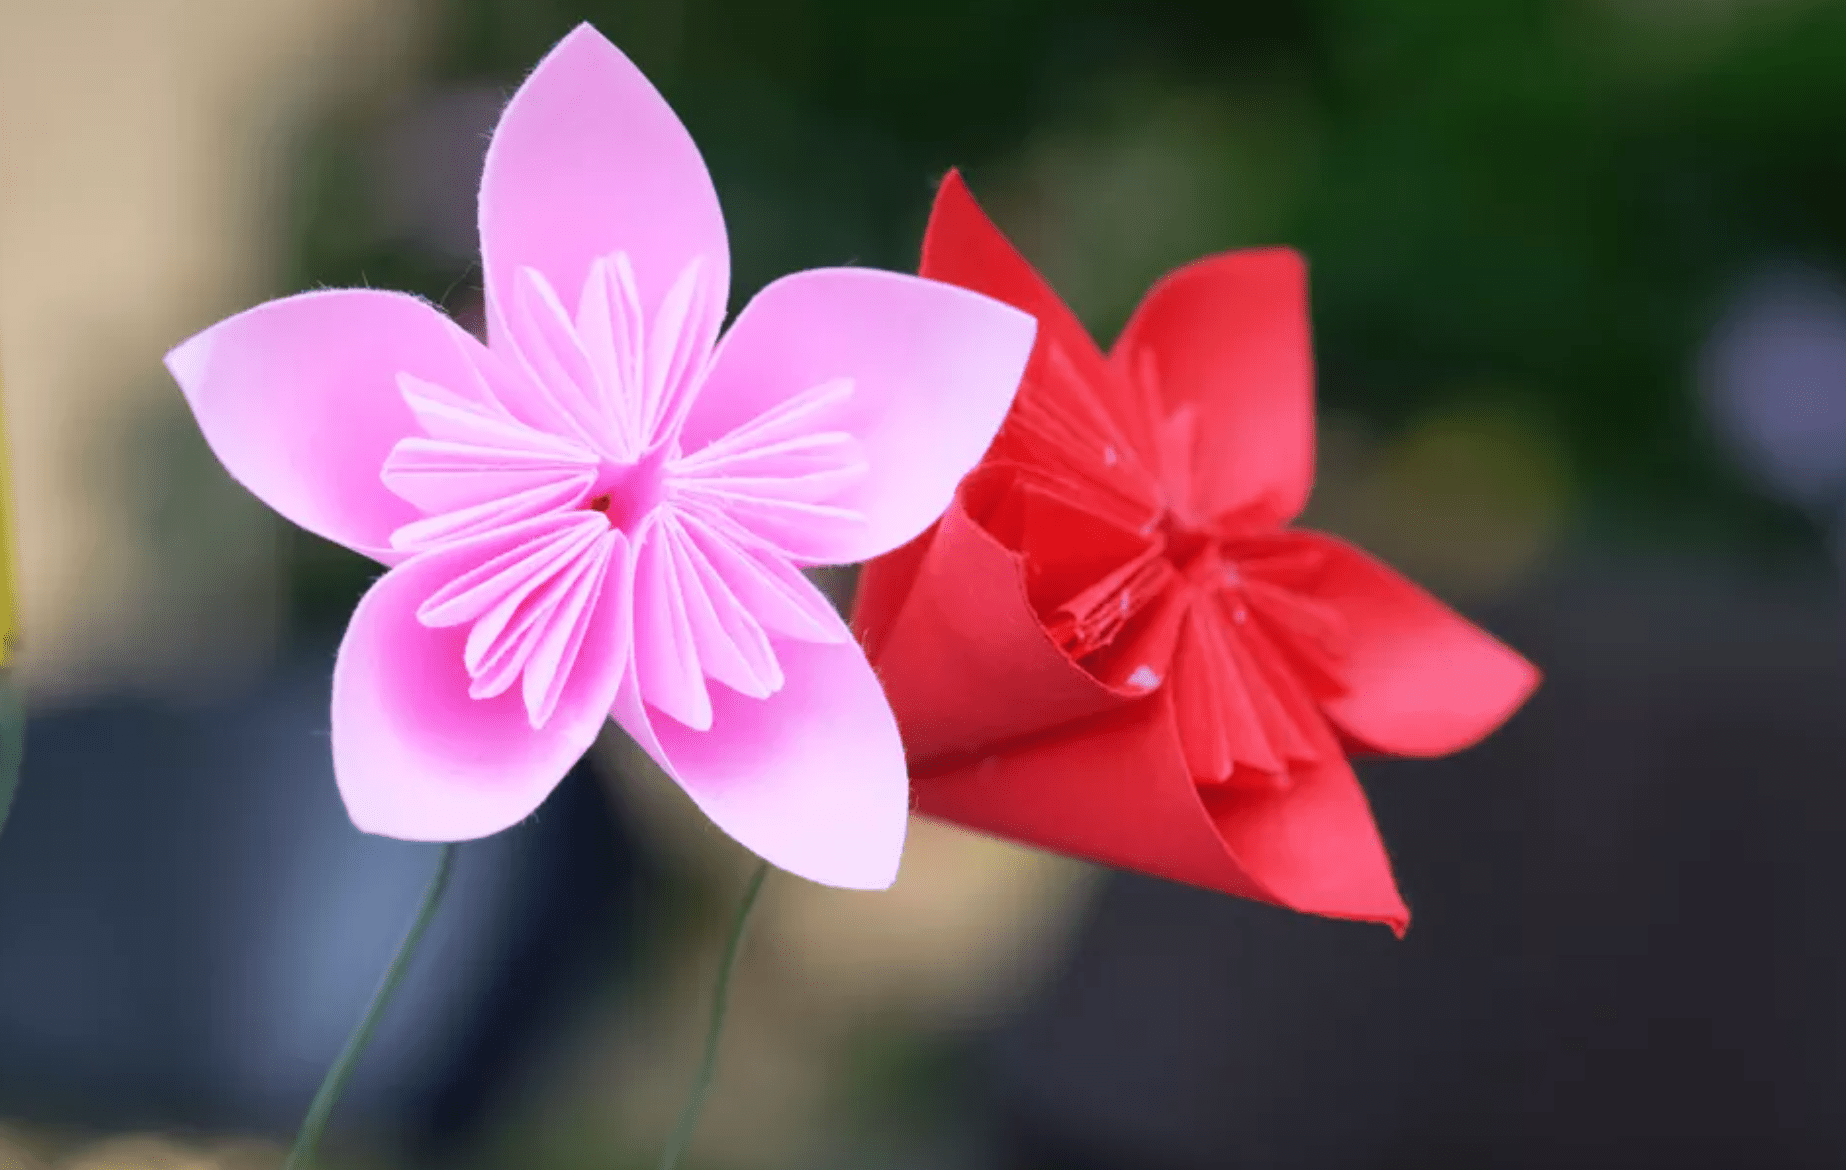 cherry blossom flowers made from colorful paper